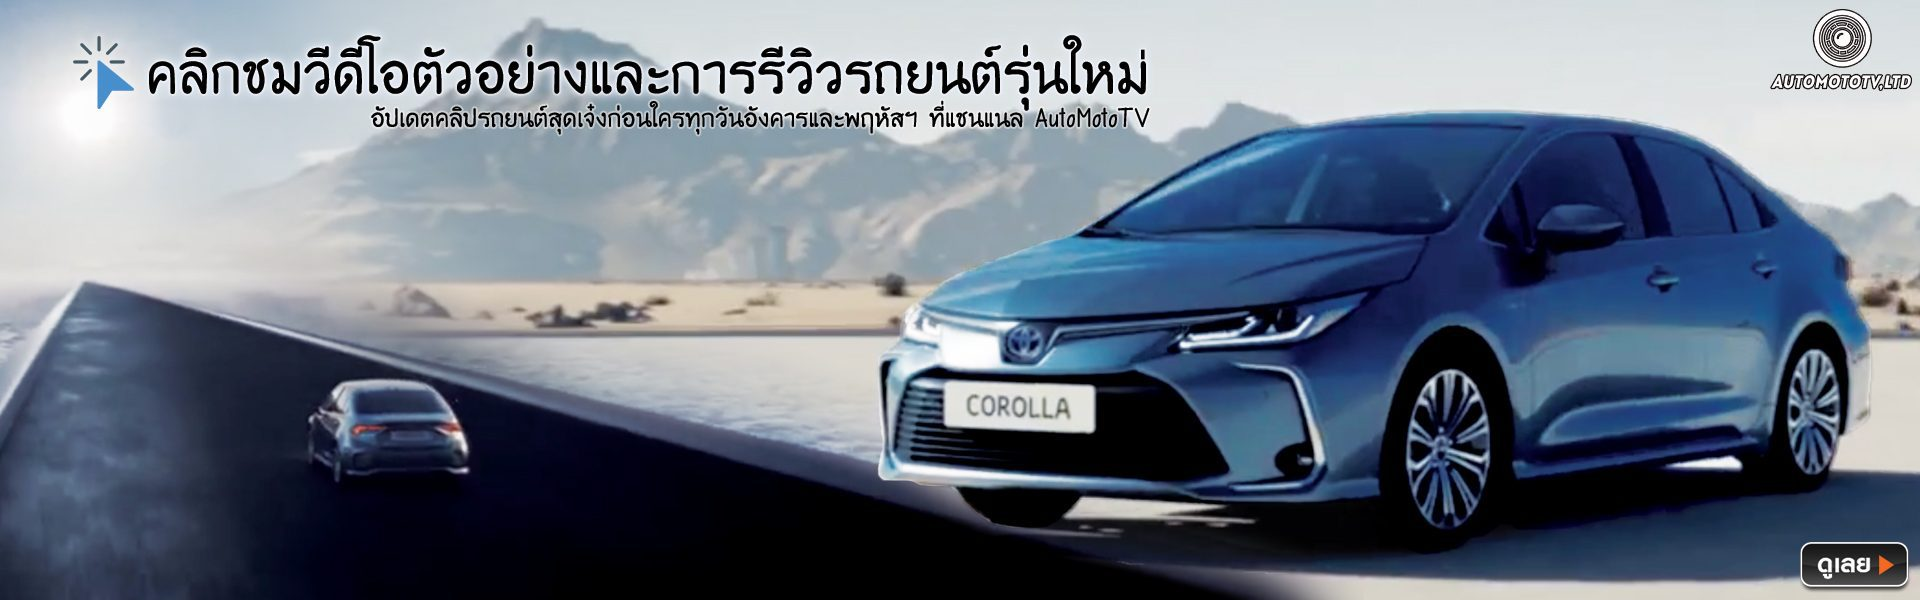 New Toyota Corolla movie Prestige model